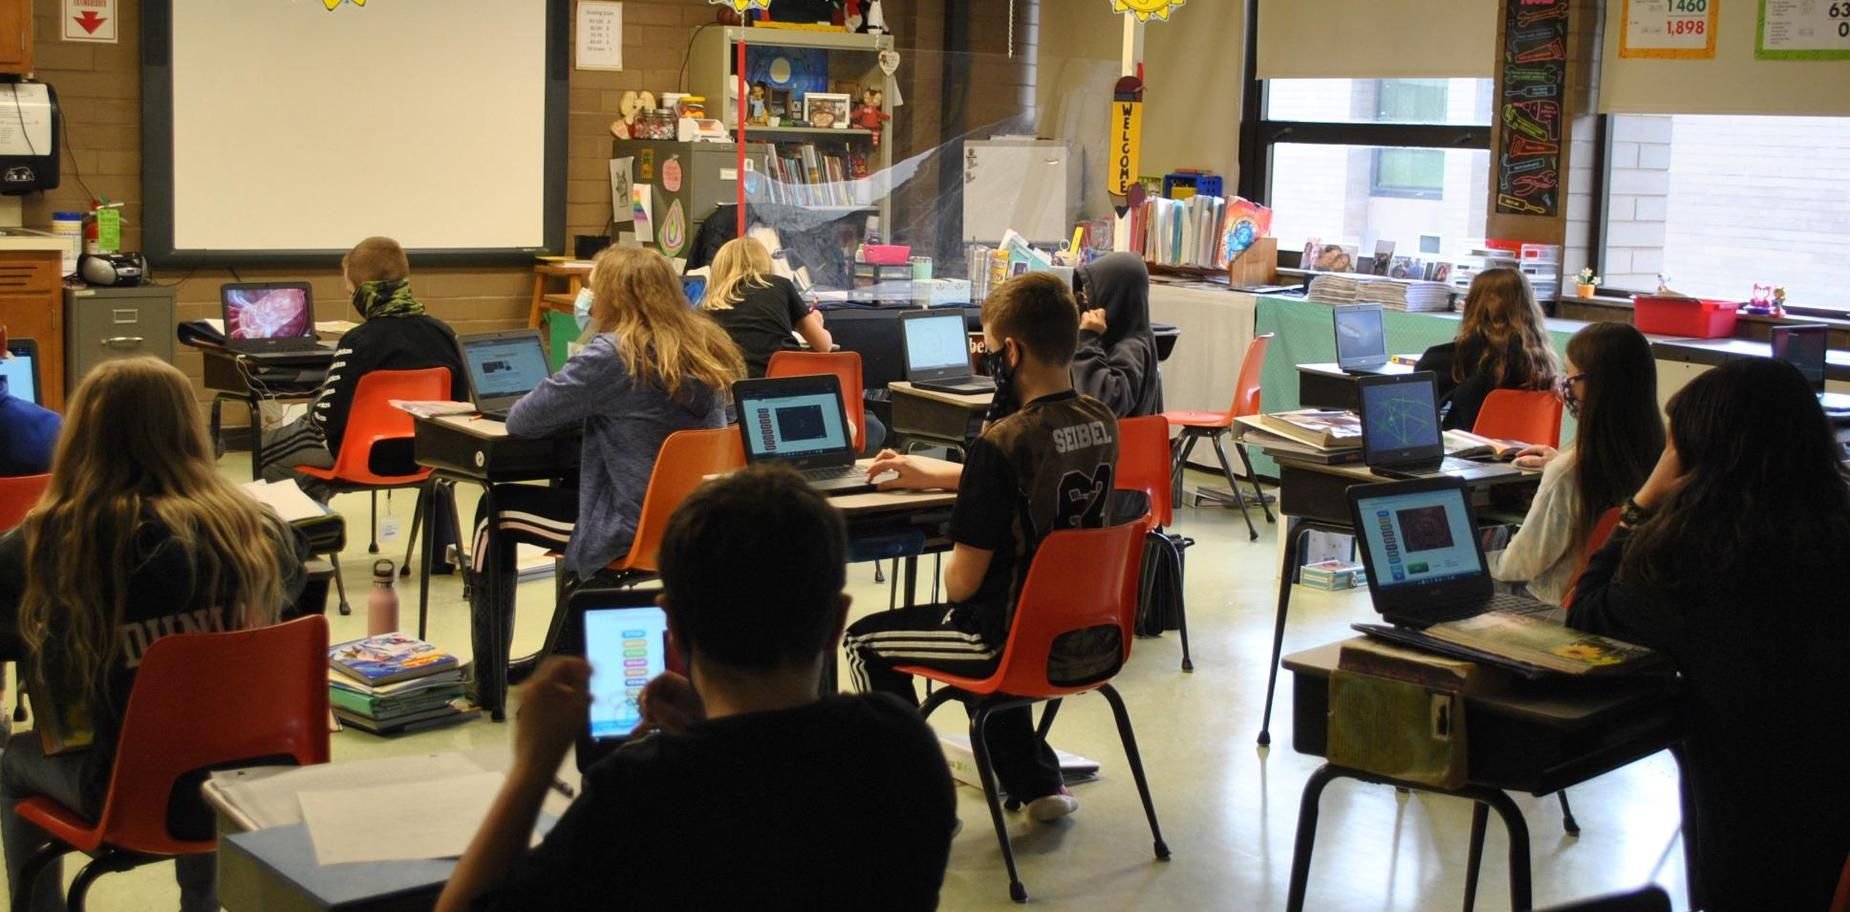 classroom of students working on Chromebooks